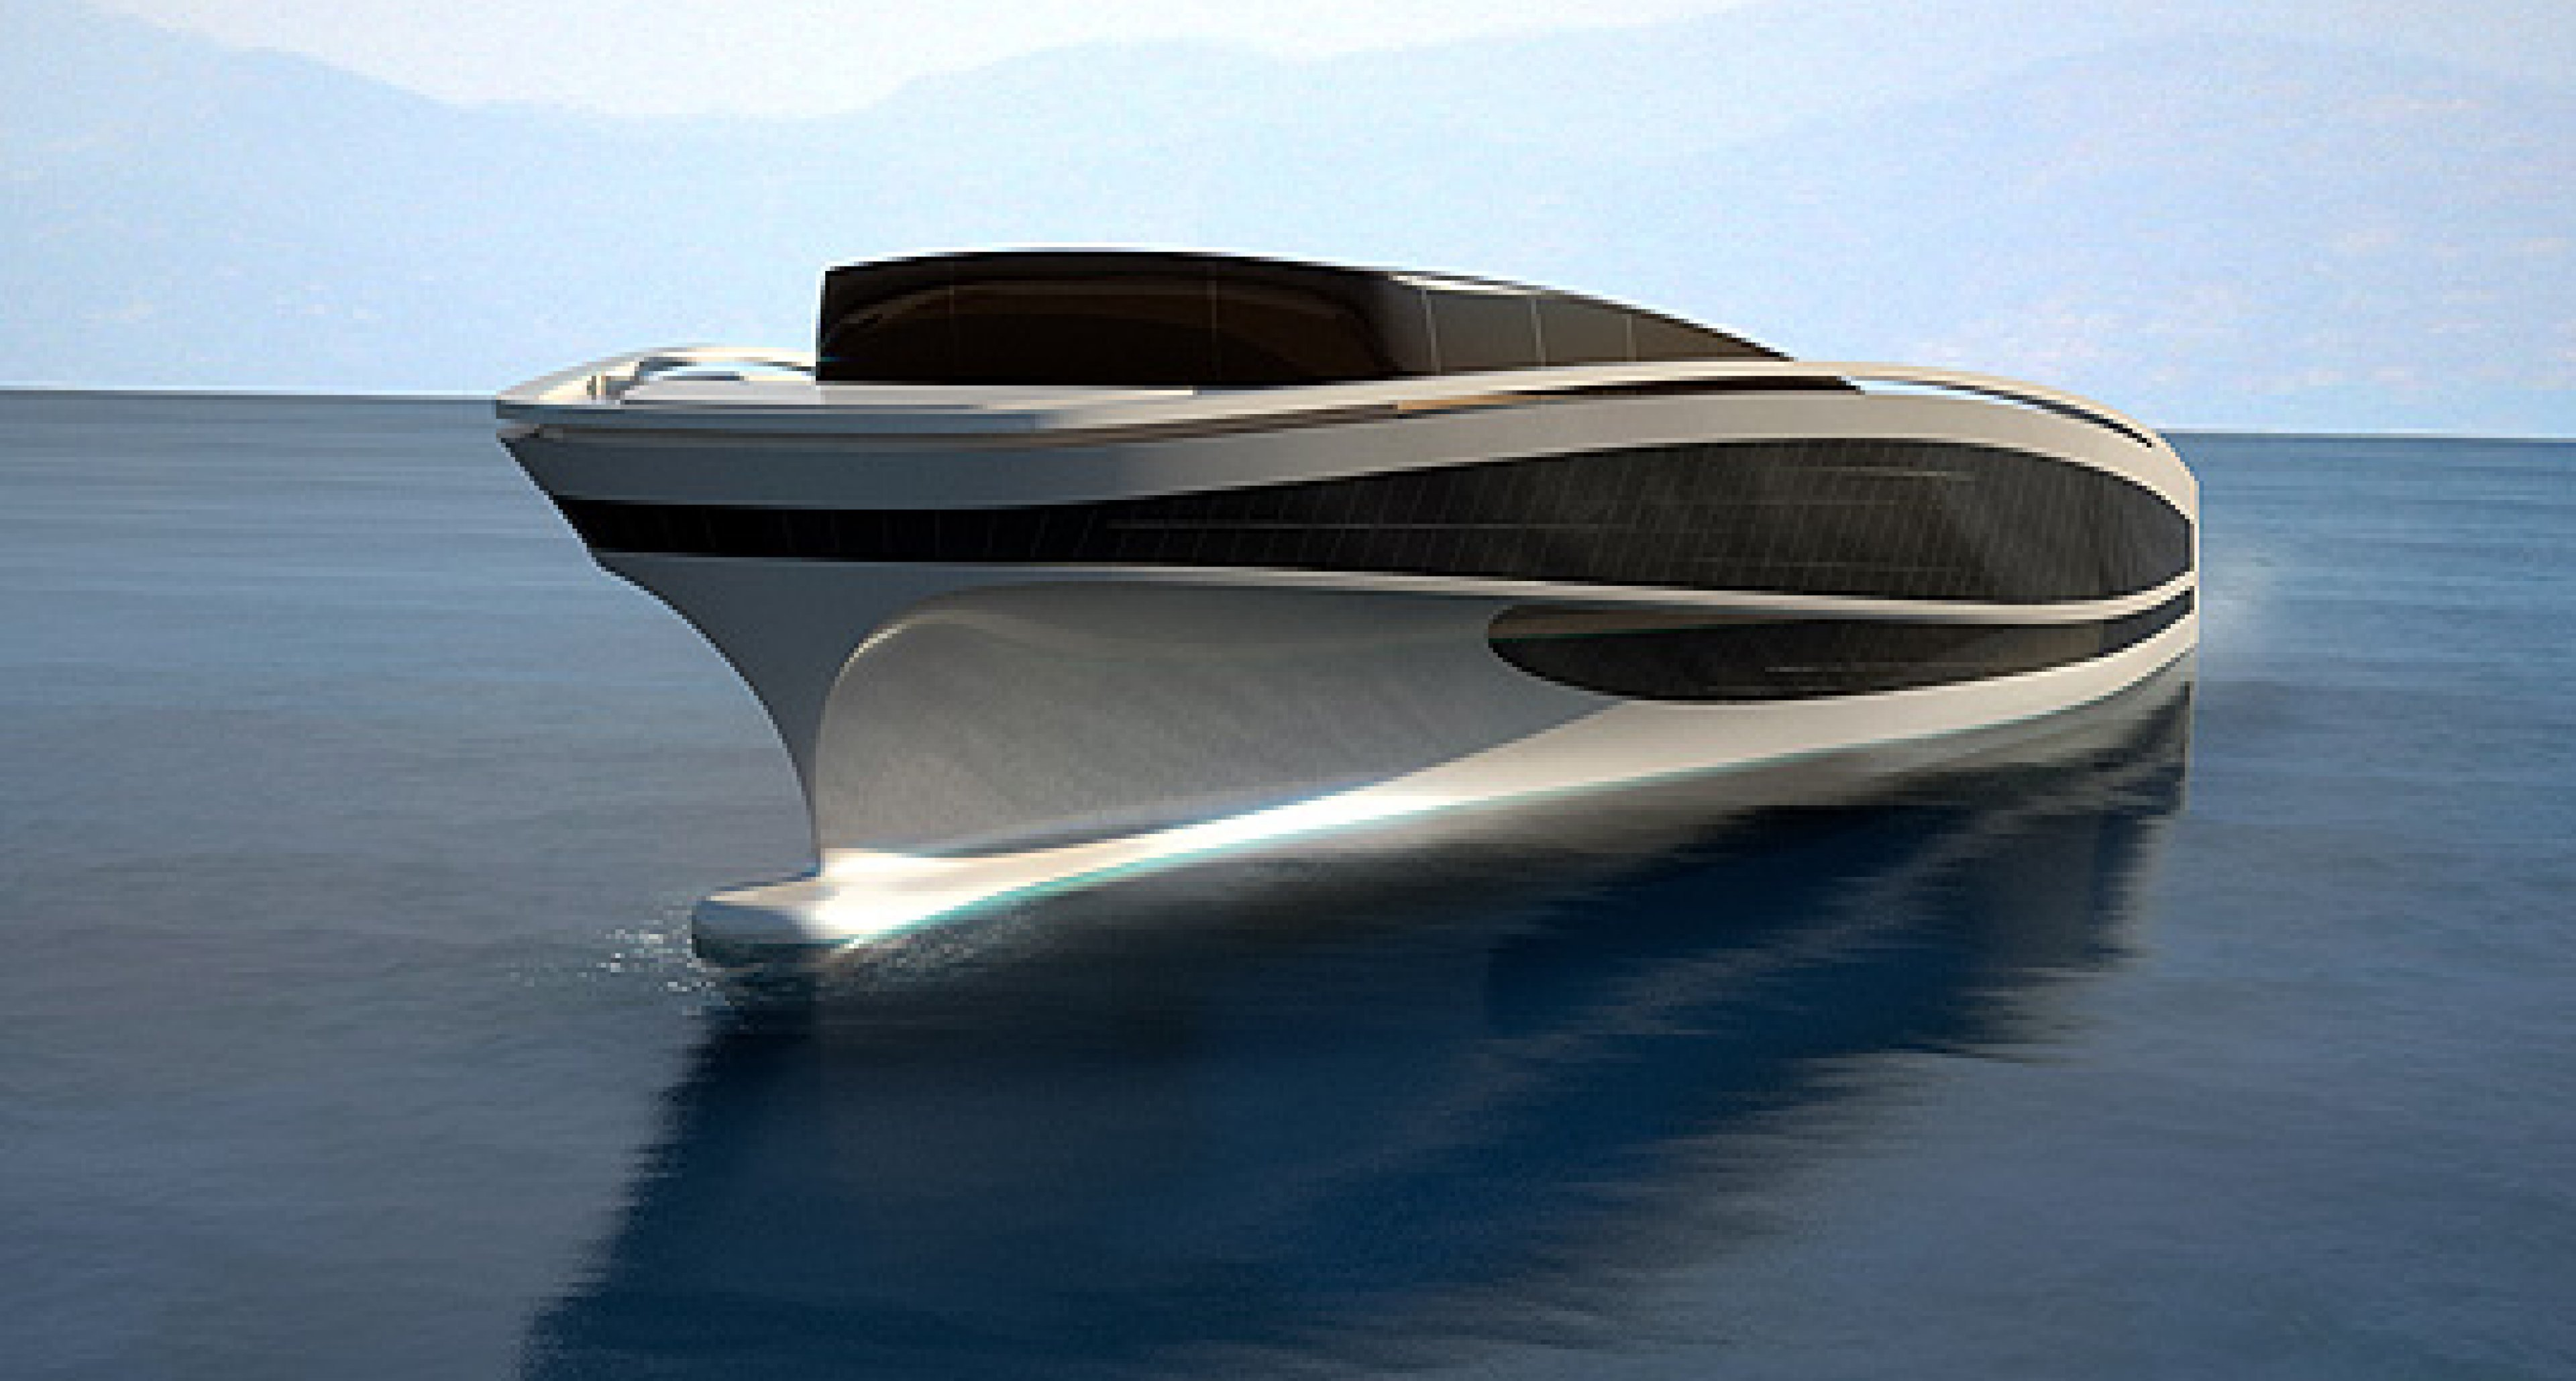 Wally Hermès Yachts ('WHY'): A Yacht Like No Other